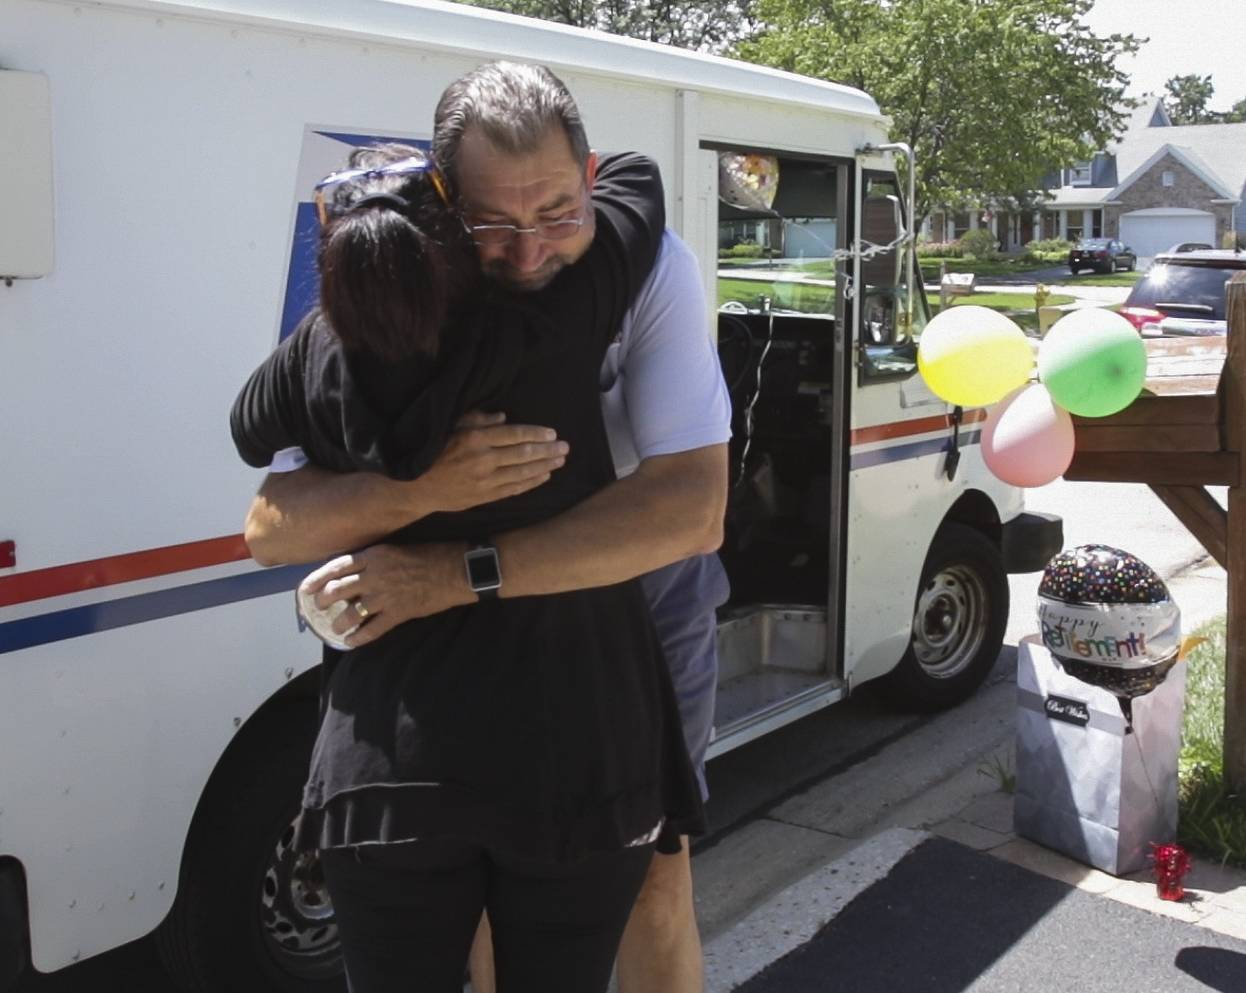 Retiring mailman Tom Nemec gets a hug Monday from Mari Bartilotta in Winfield Estates. Nemec has delivered mail to the neighborhood for nearly 30 years.